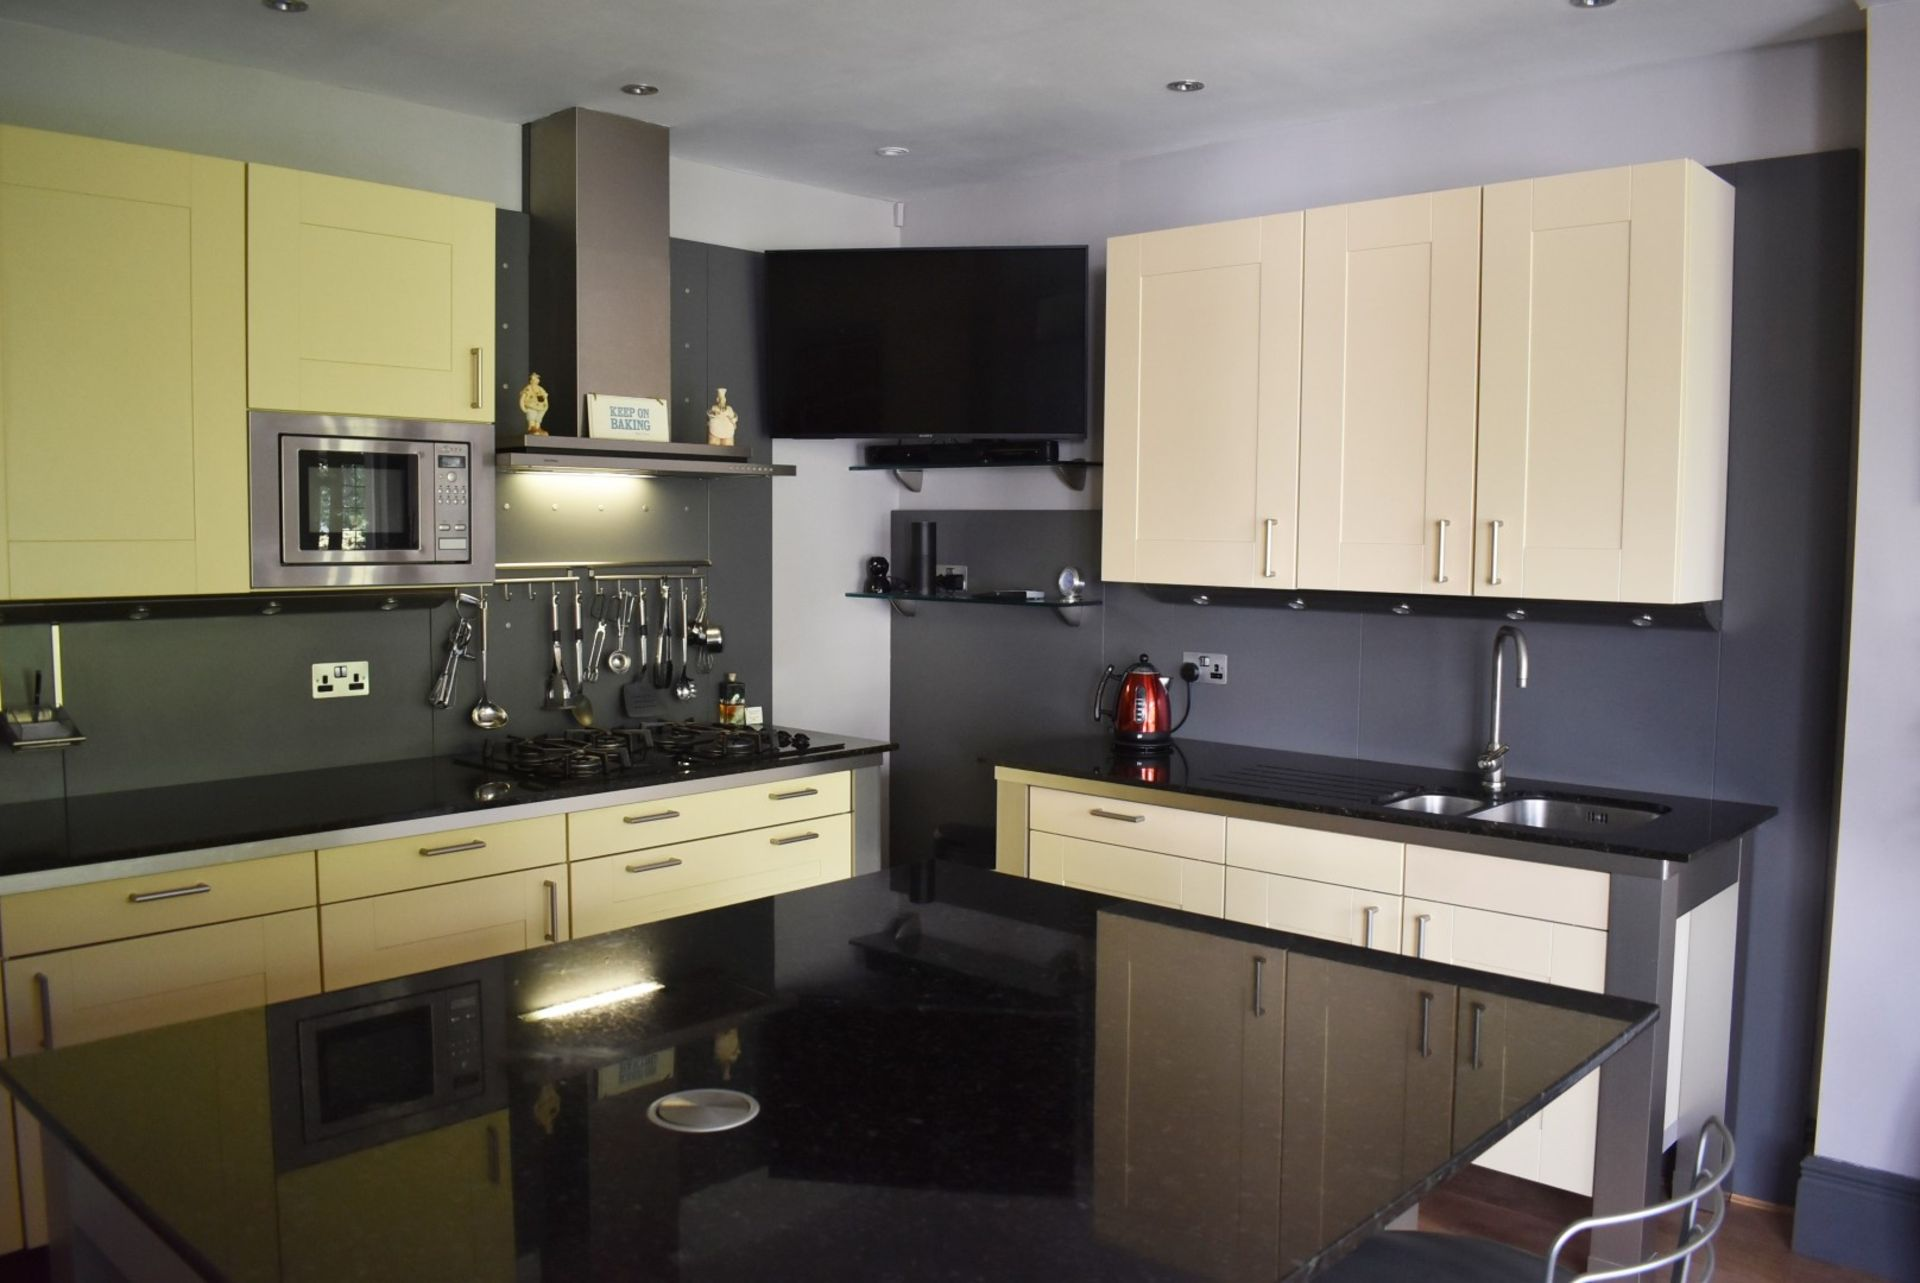 1 x SieMatic Contemporary Fitted Kitchen With Appliances - Features Shaker Style Doors, Central - Image 36 of 96